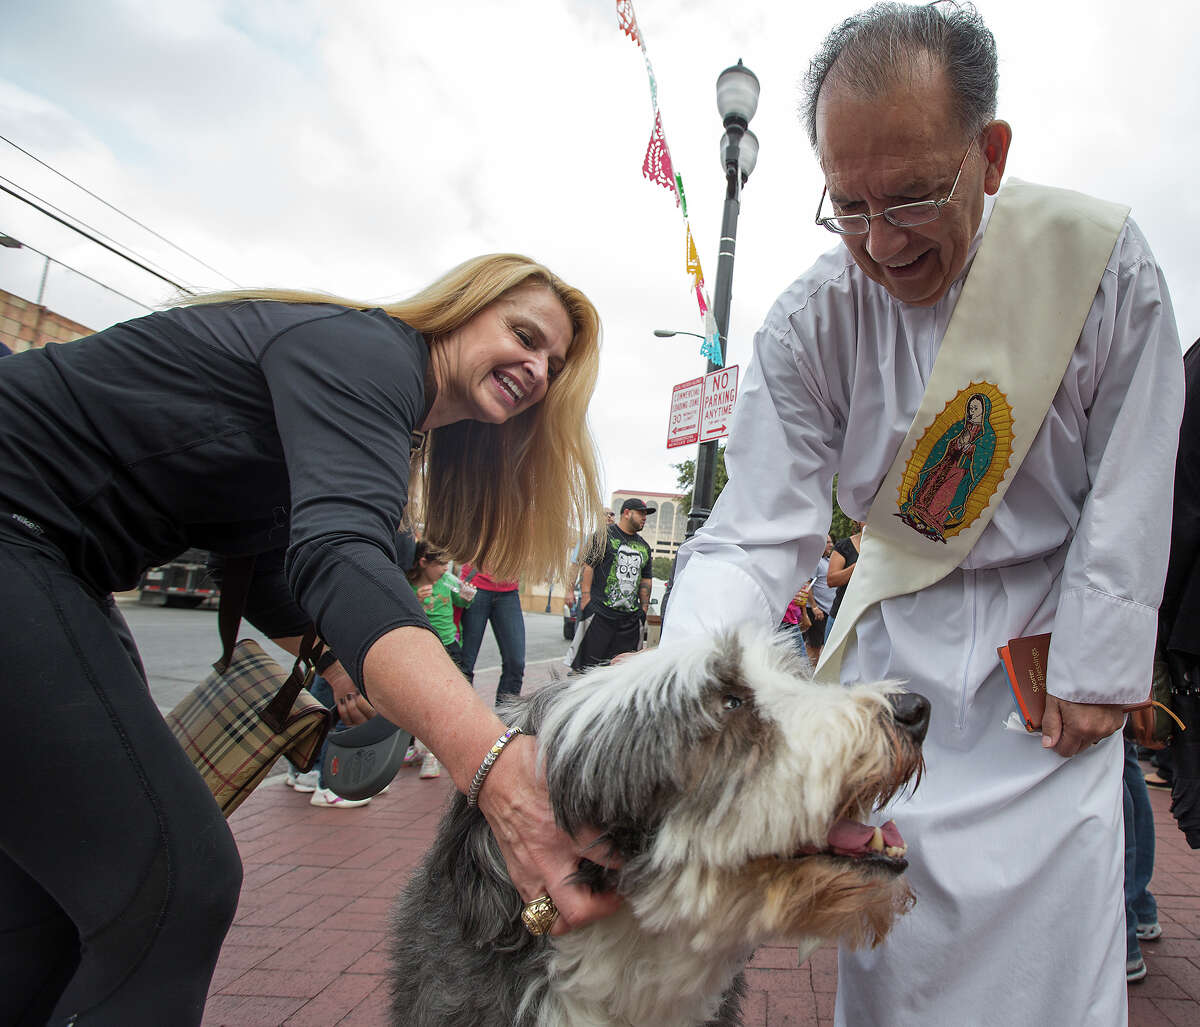 Deacon Tony Rivera, right, greets Polo, a bearded collie owned by Michelle Mika DeAtley, left, during the 26th annual Blessing of the Animals at Market Square on Saturday, Dec. 8, 2012.